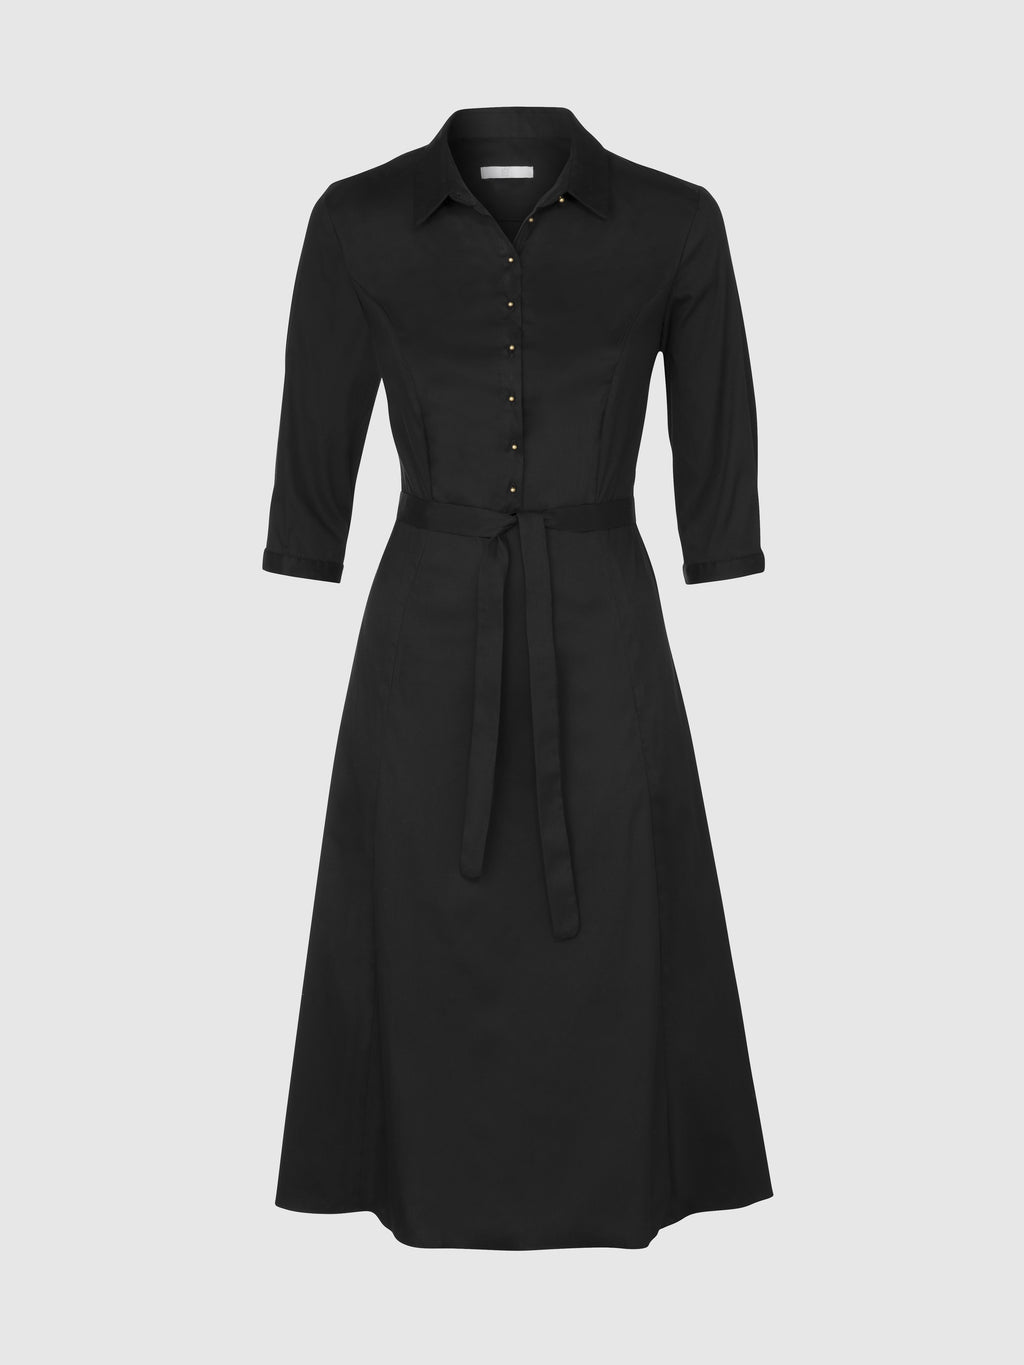 Front view of a below the knee black fitted shirt dress with gold metal shank ball buttons, a tie belt, and a 3/4 sleeve with a narrow cuff, from the RÉZO women's collection.